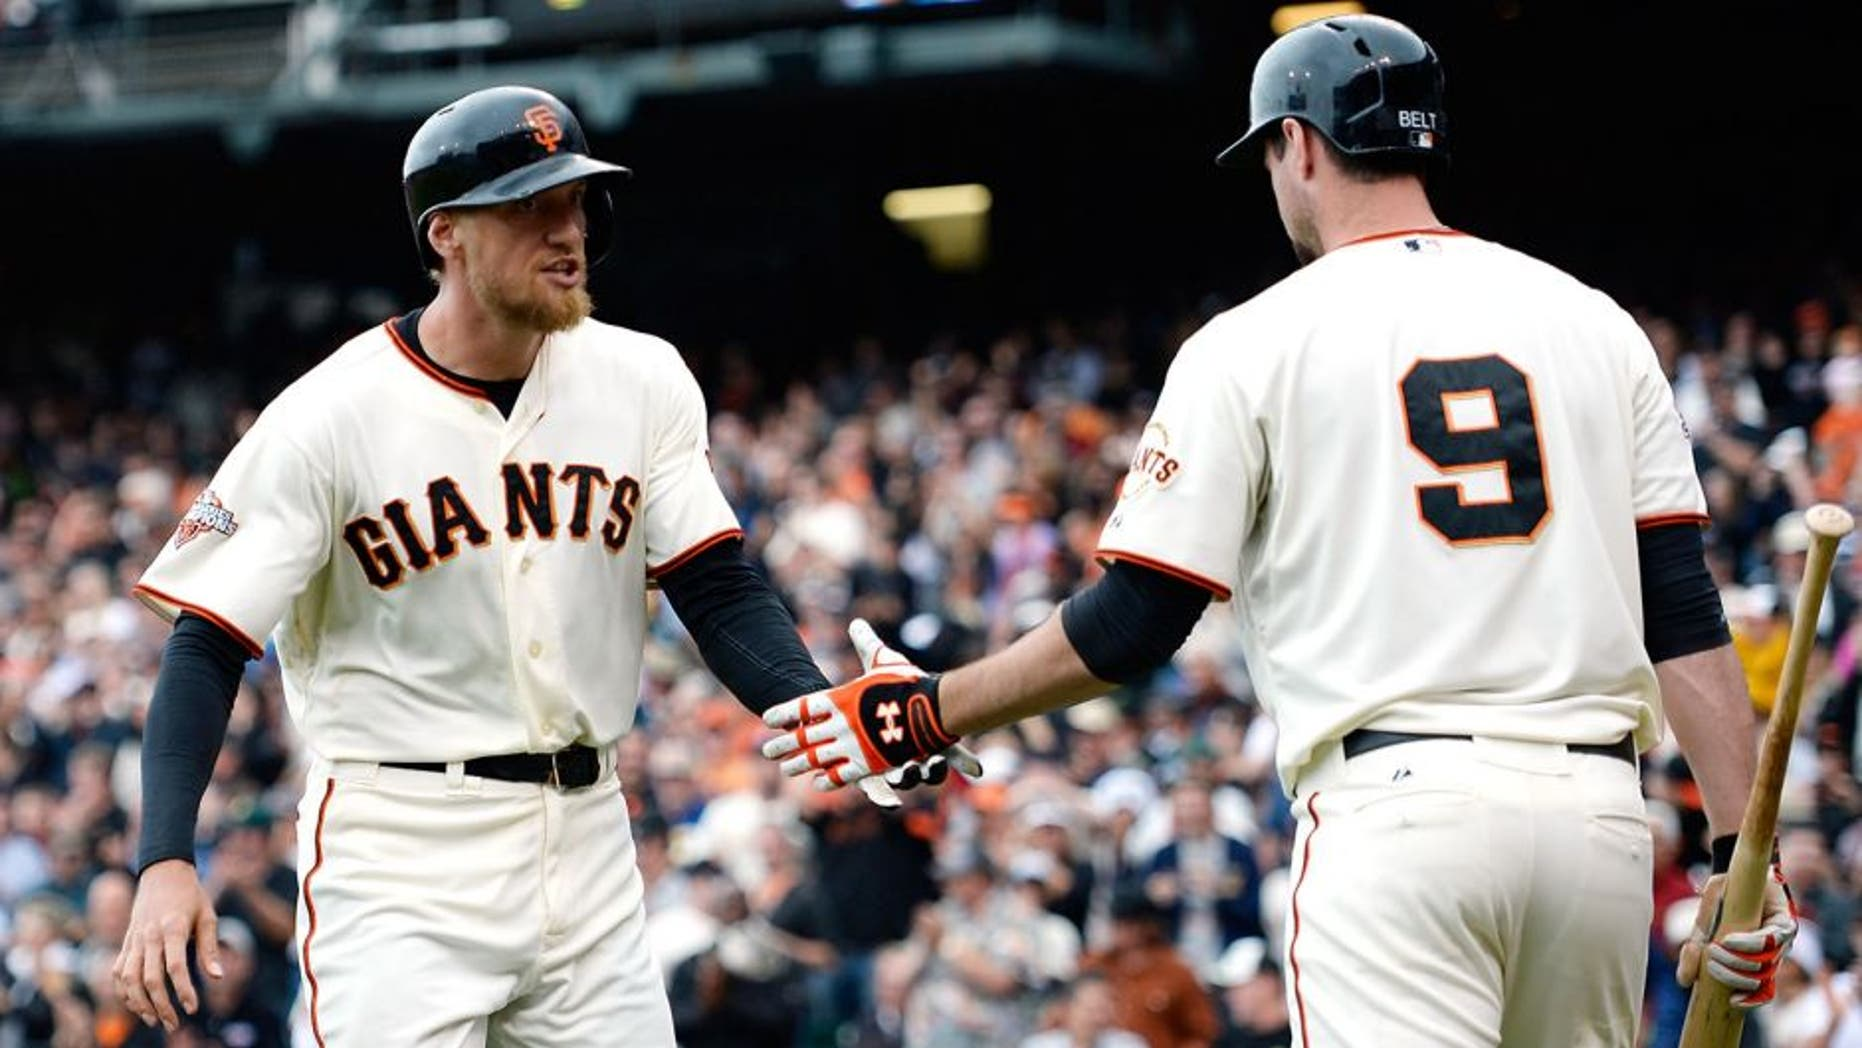 SAN FRANCISCO, CA - JUNE 23: Hunter Pence #8 of the San Francisco Giants is congratulated by Brandon Belt #9 after Pence hit a solo home run in the seventh inning against the Miami Marlins at AT&T Park on June 23, 2013 in San Francisco, California. (Photo by Thearon W. Henderson/Getty Images)